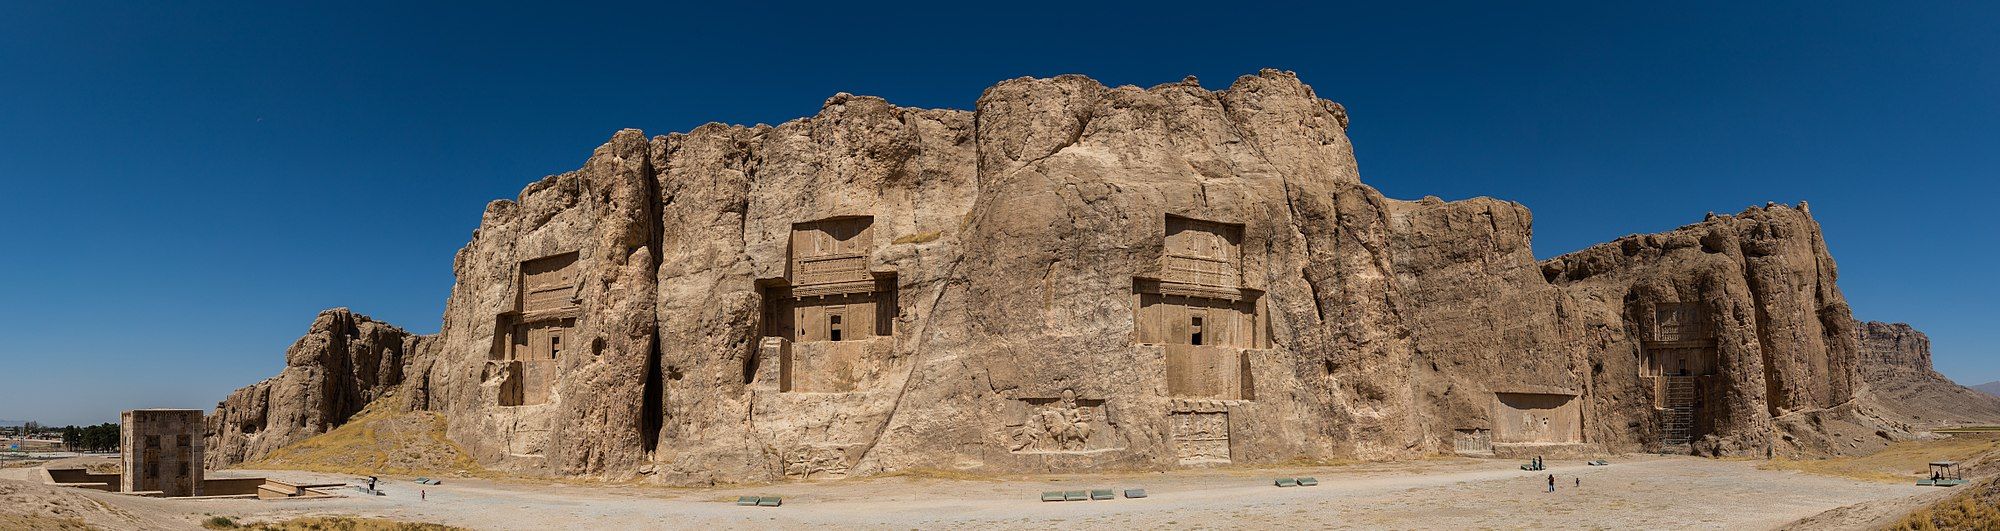 Panoramic view of the ancient Naqsh-e Rustam necropolis located about 12 km northwest of Persepolis, in Fars Province, Iran. The site includes rock reliefs of Achaemenid and Sassanid periods, 4 tombs of Achaemenid kings and a Cube of Zoroaster (far left). The reliefs are the oldest elements (the oldest one from 1000 BC) of Elamite origin. The tombs were carved out of the rock and belong (left to right) to Darius II (c. 423-404 BC), Artaxerxes I (c. 465-424 BC), Darius I (c. 522-486 BC) and Xerxes I (c. 486-465 BC). The Cube of Zoroaster belongs to the Achaemenid era (5th century BC) and its purpose is still unclear.